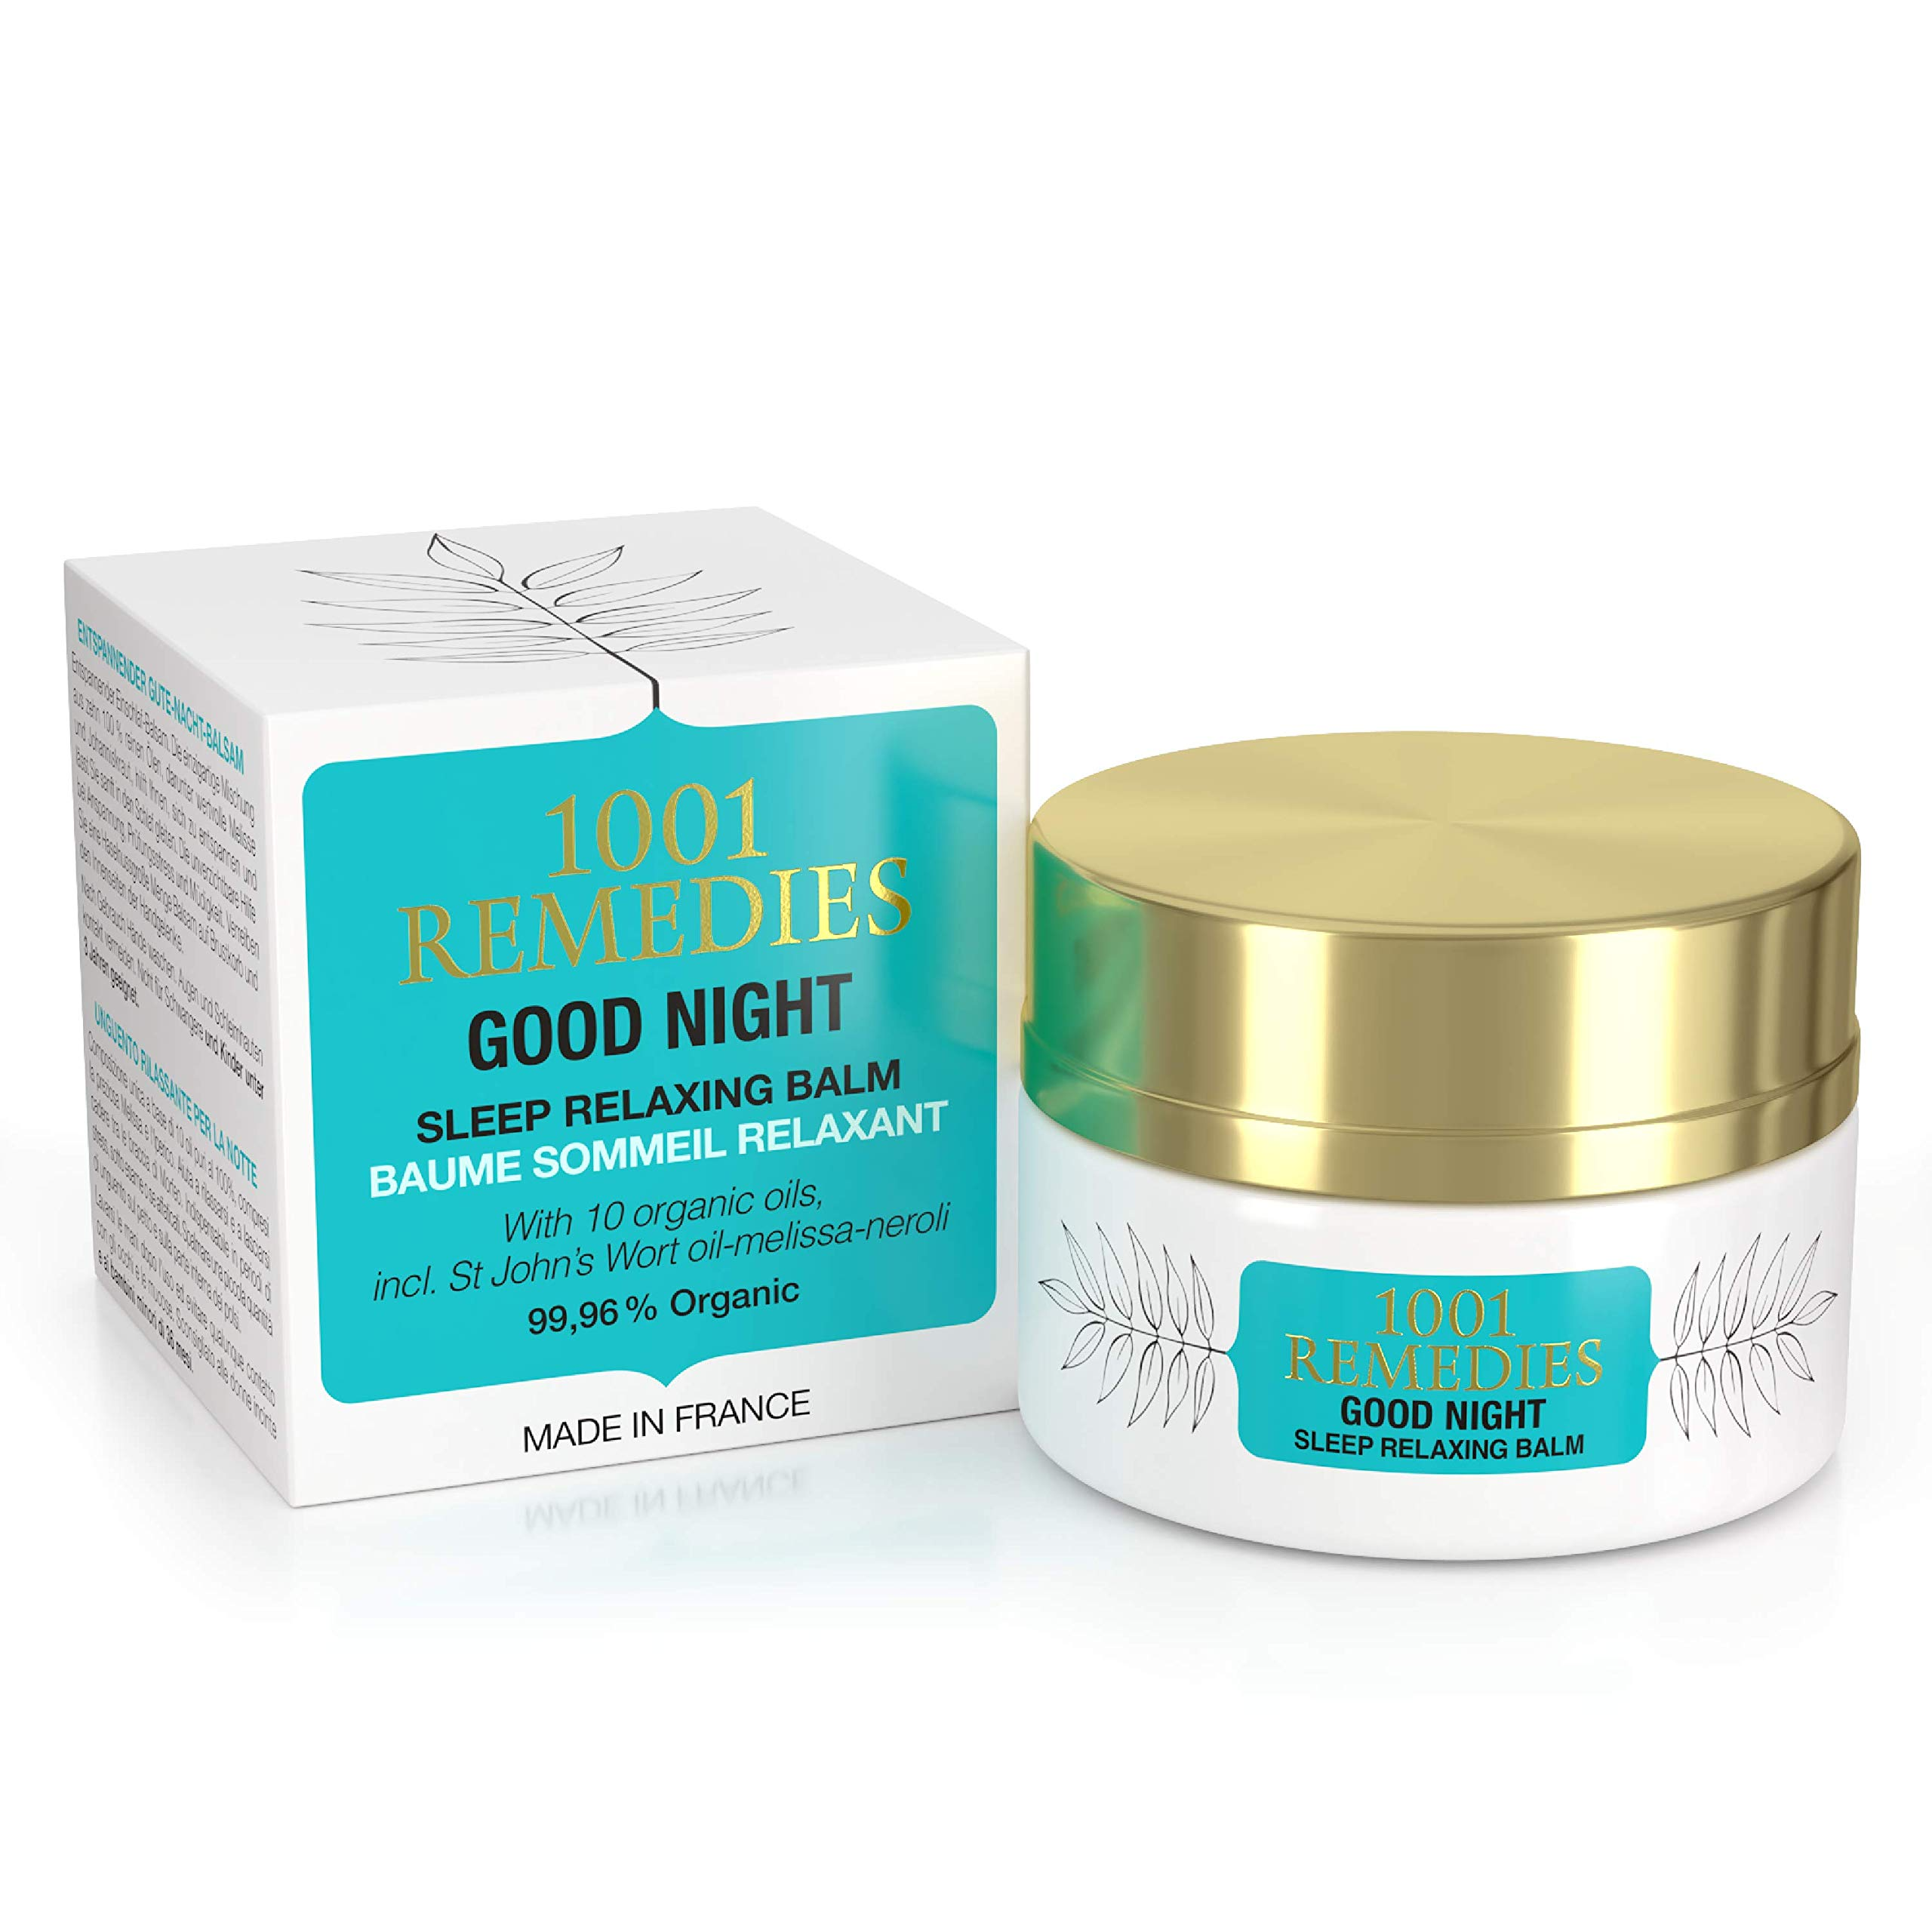 Sleep Balm by 1001 Remedies - Natural, Made in France Lavender Body Lotion, Sleep Aid Without Melatonin for Adults & Kids- Stress Relief Balm with Chamomile, St Johns Wort & Pure Essential Oils